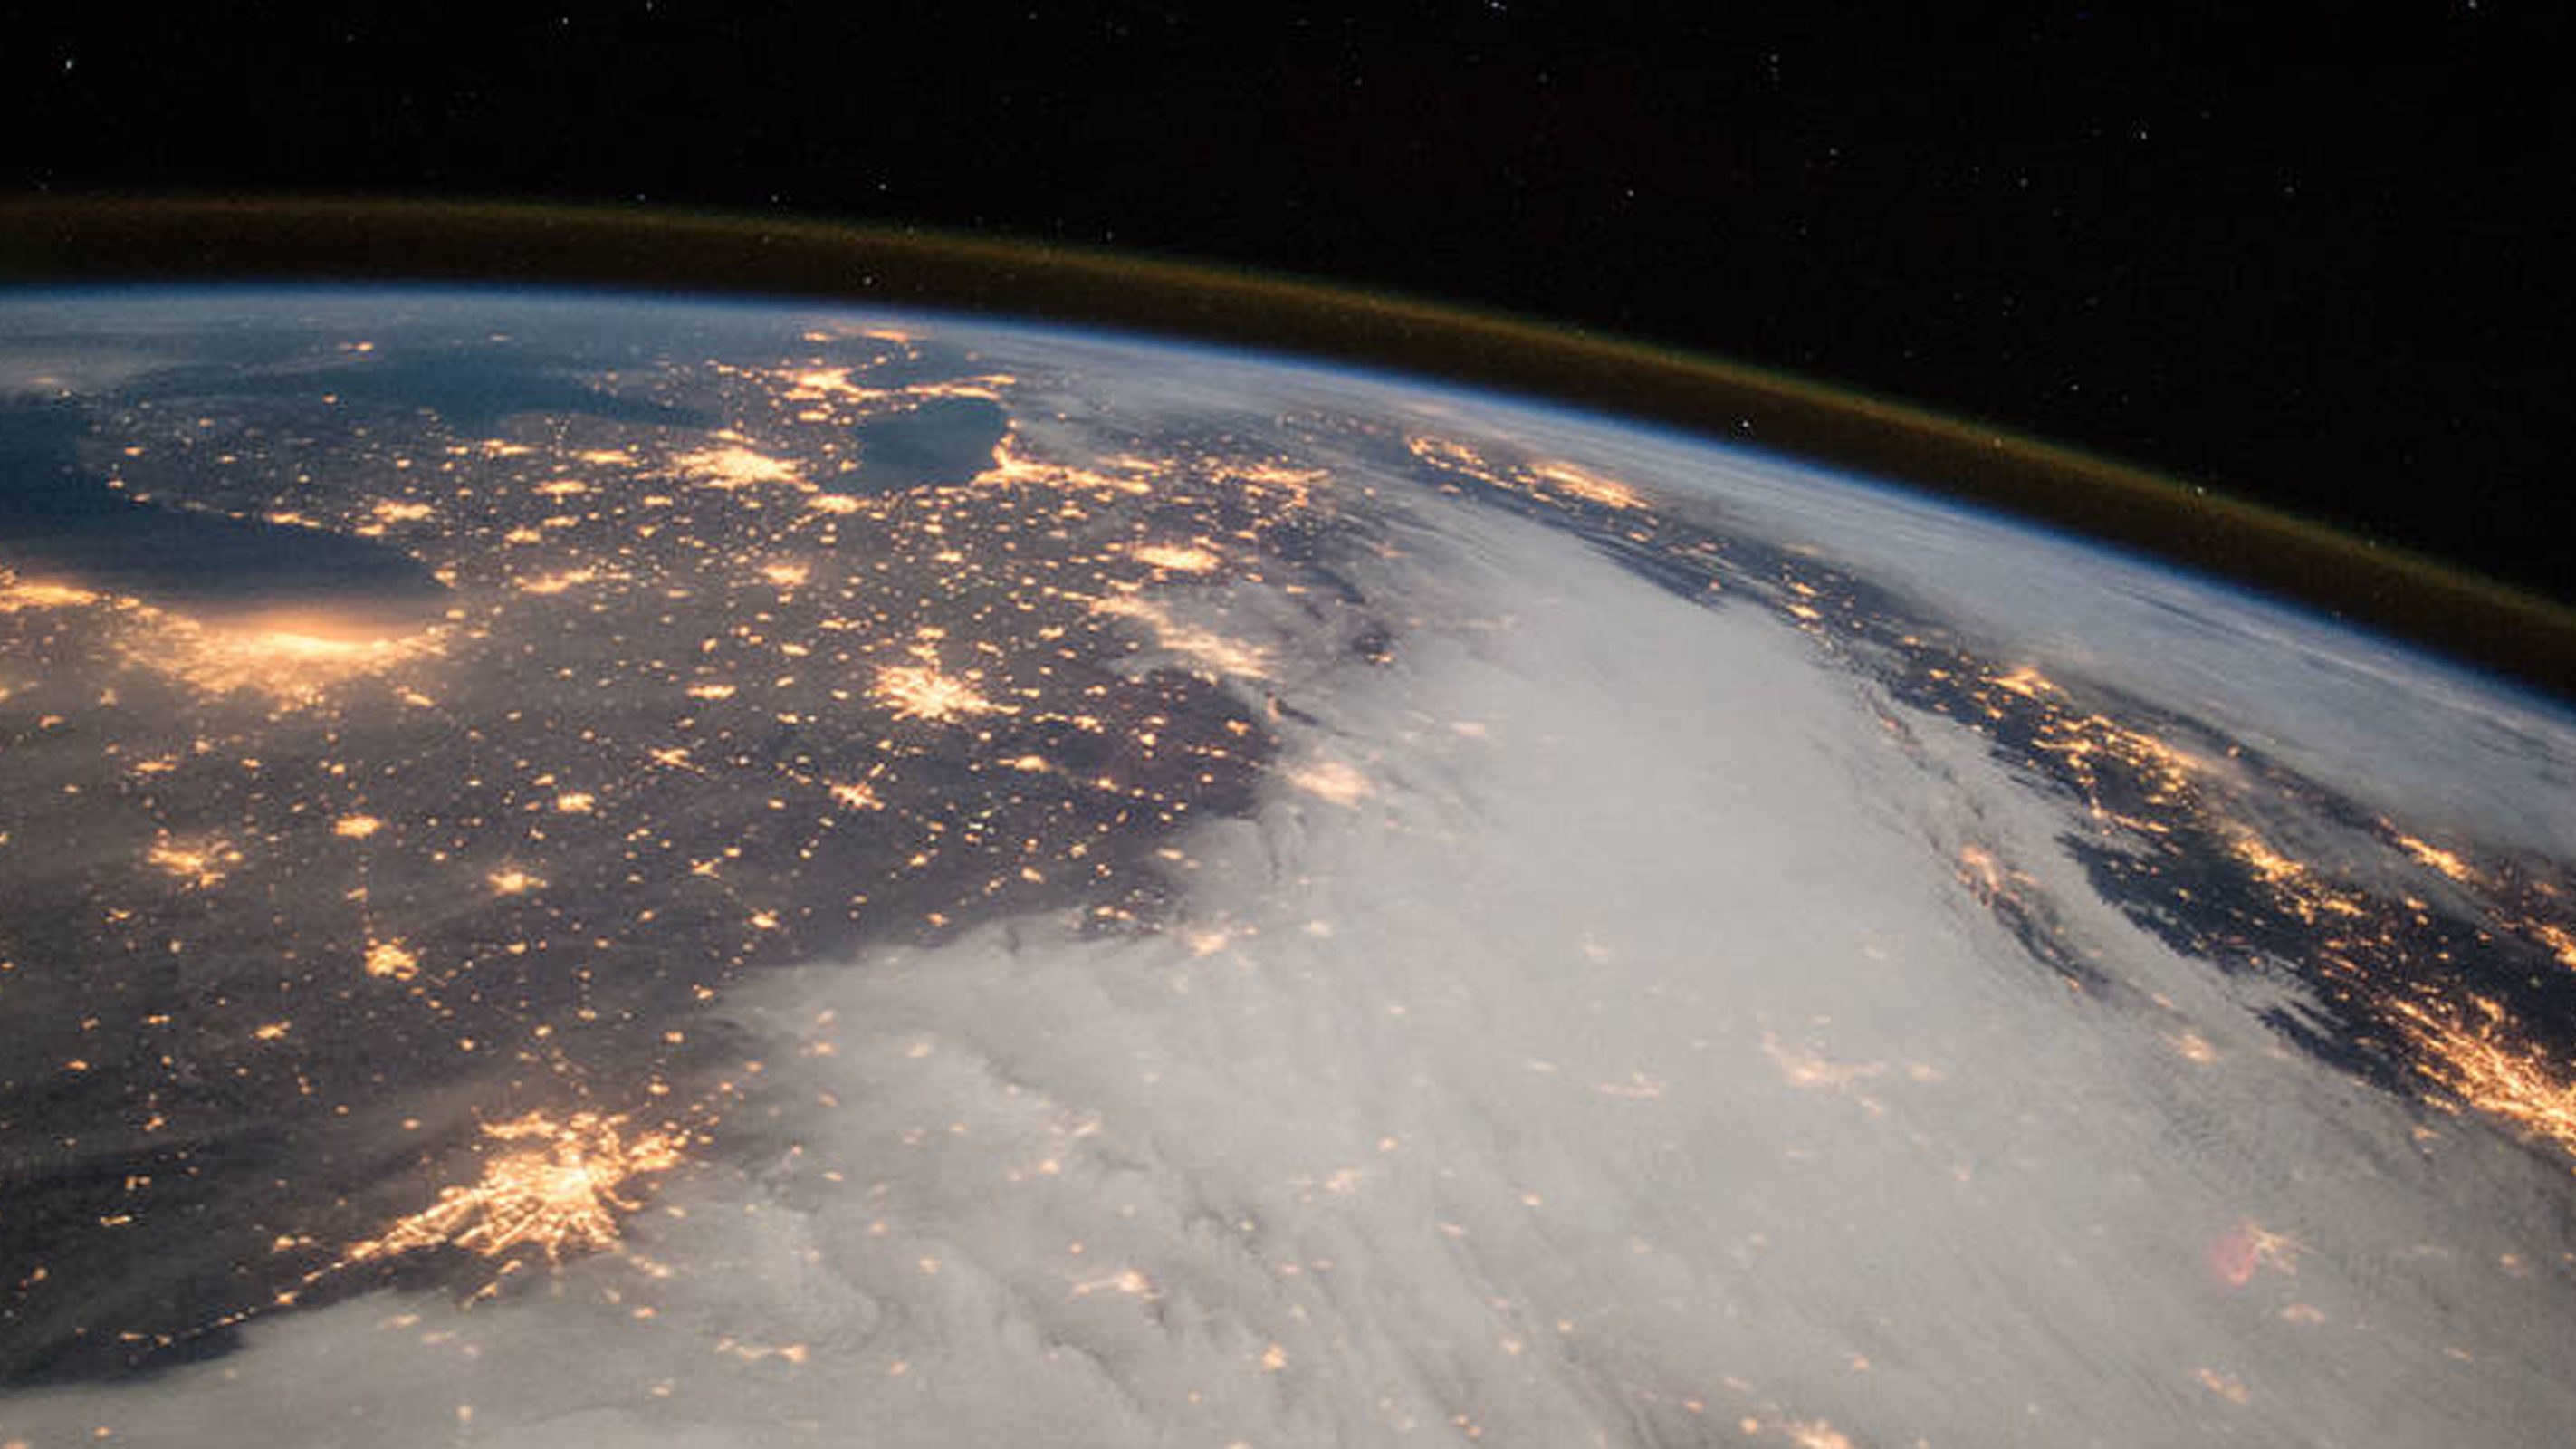 the midwest taken from space by the ISS